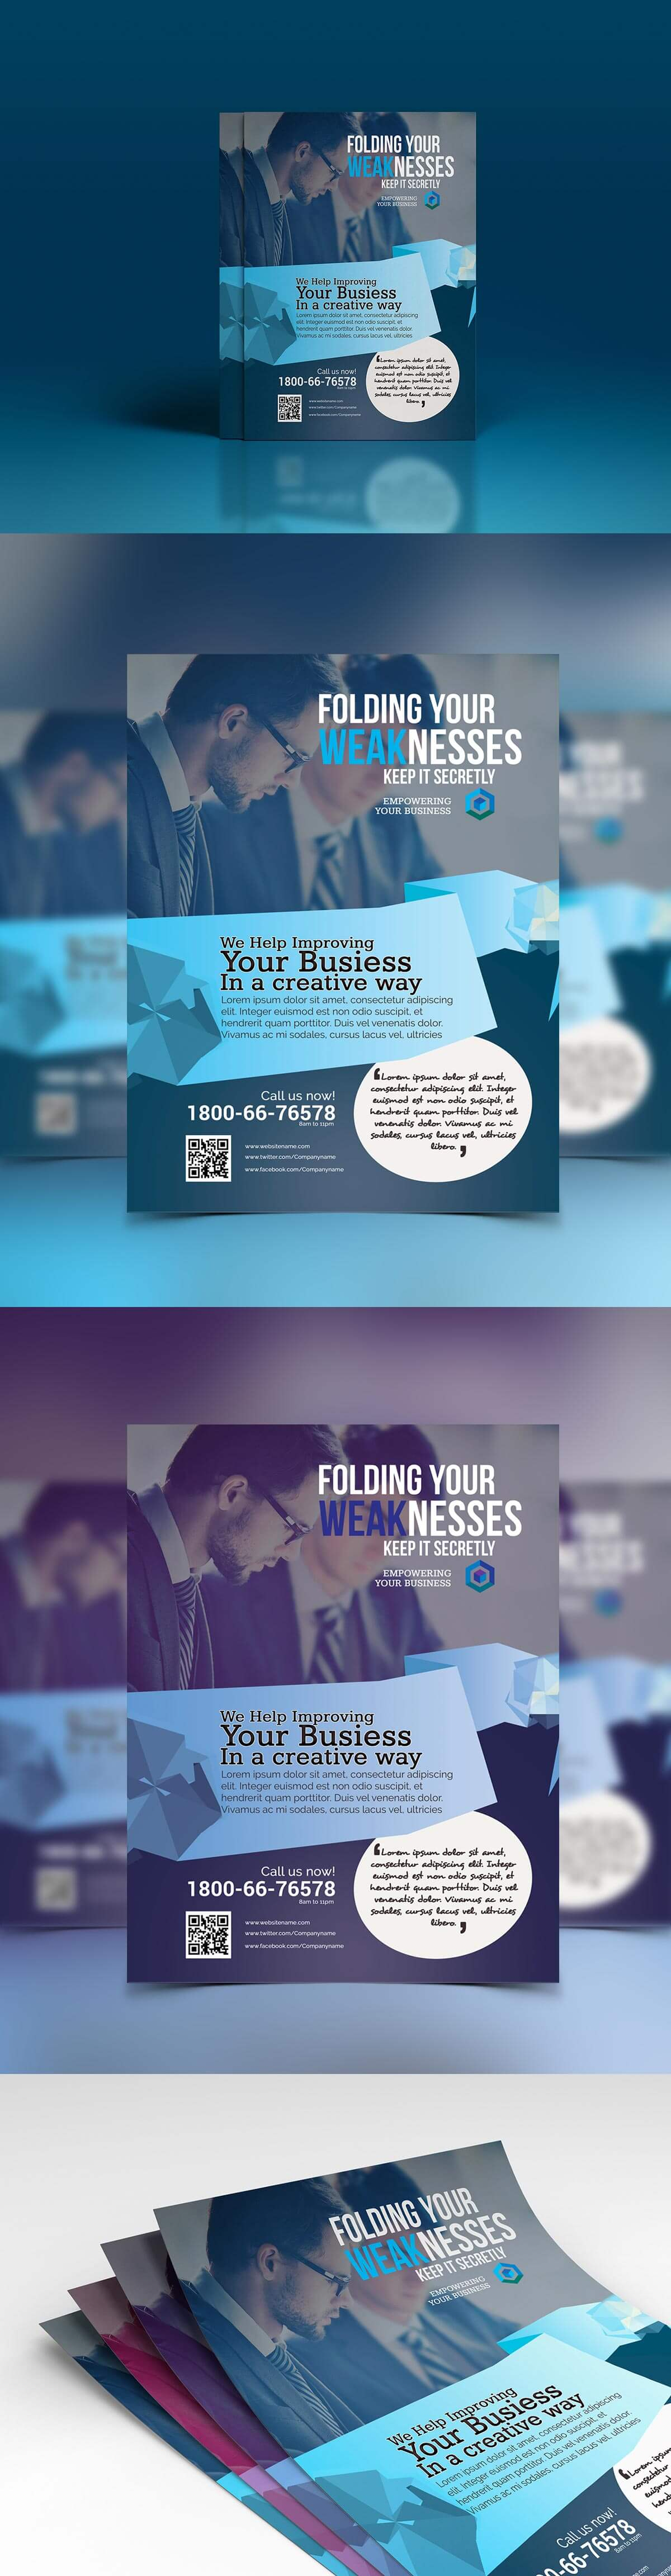 Free Clean Modern Corporate Flyer Ads